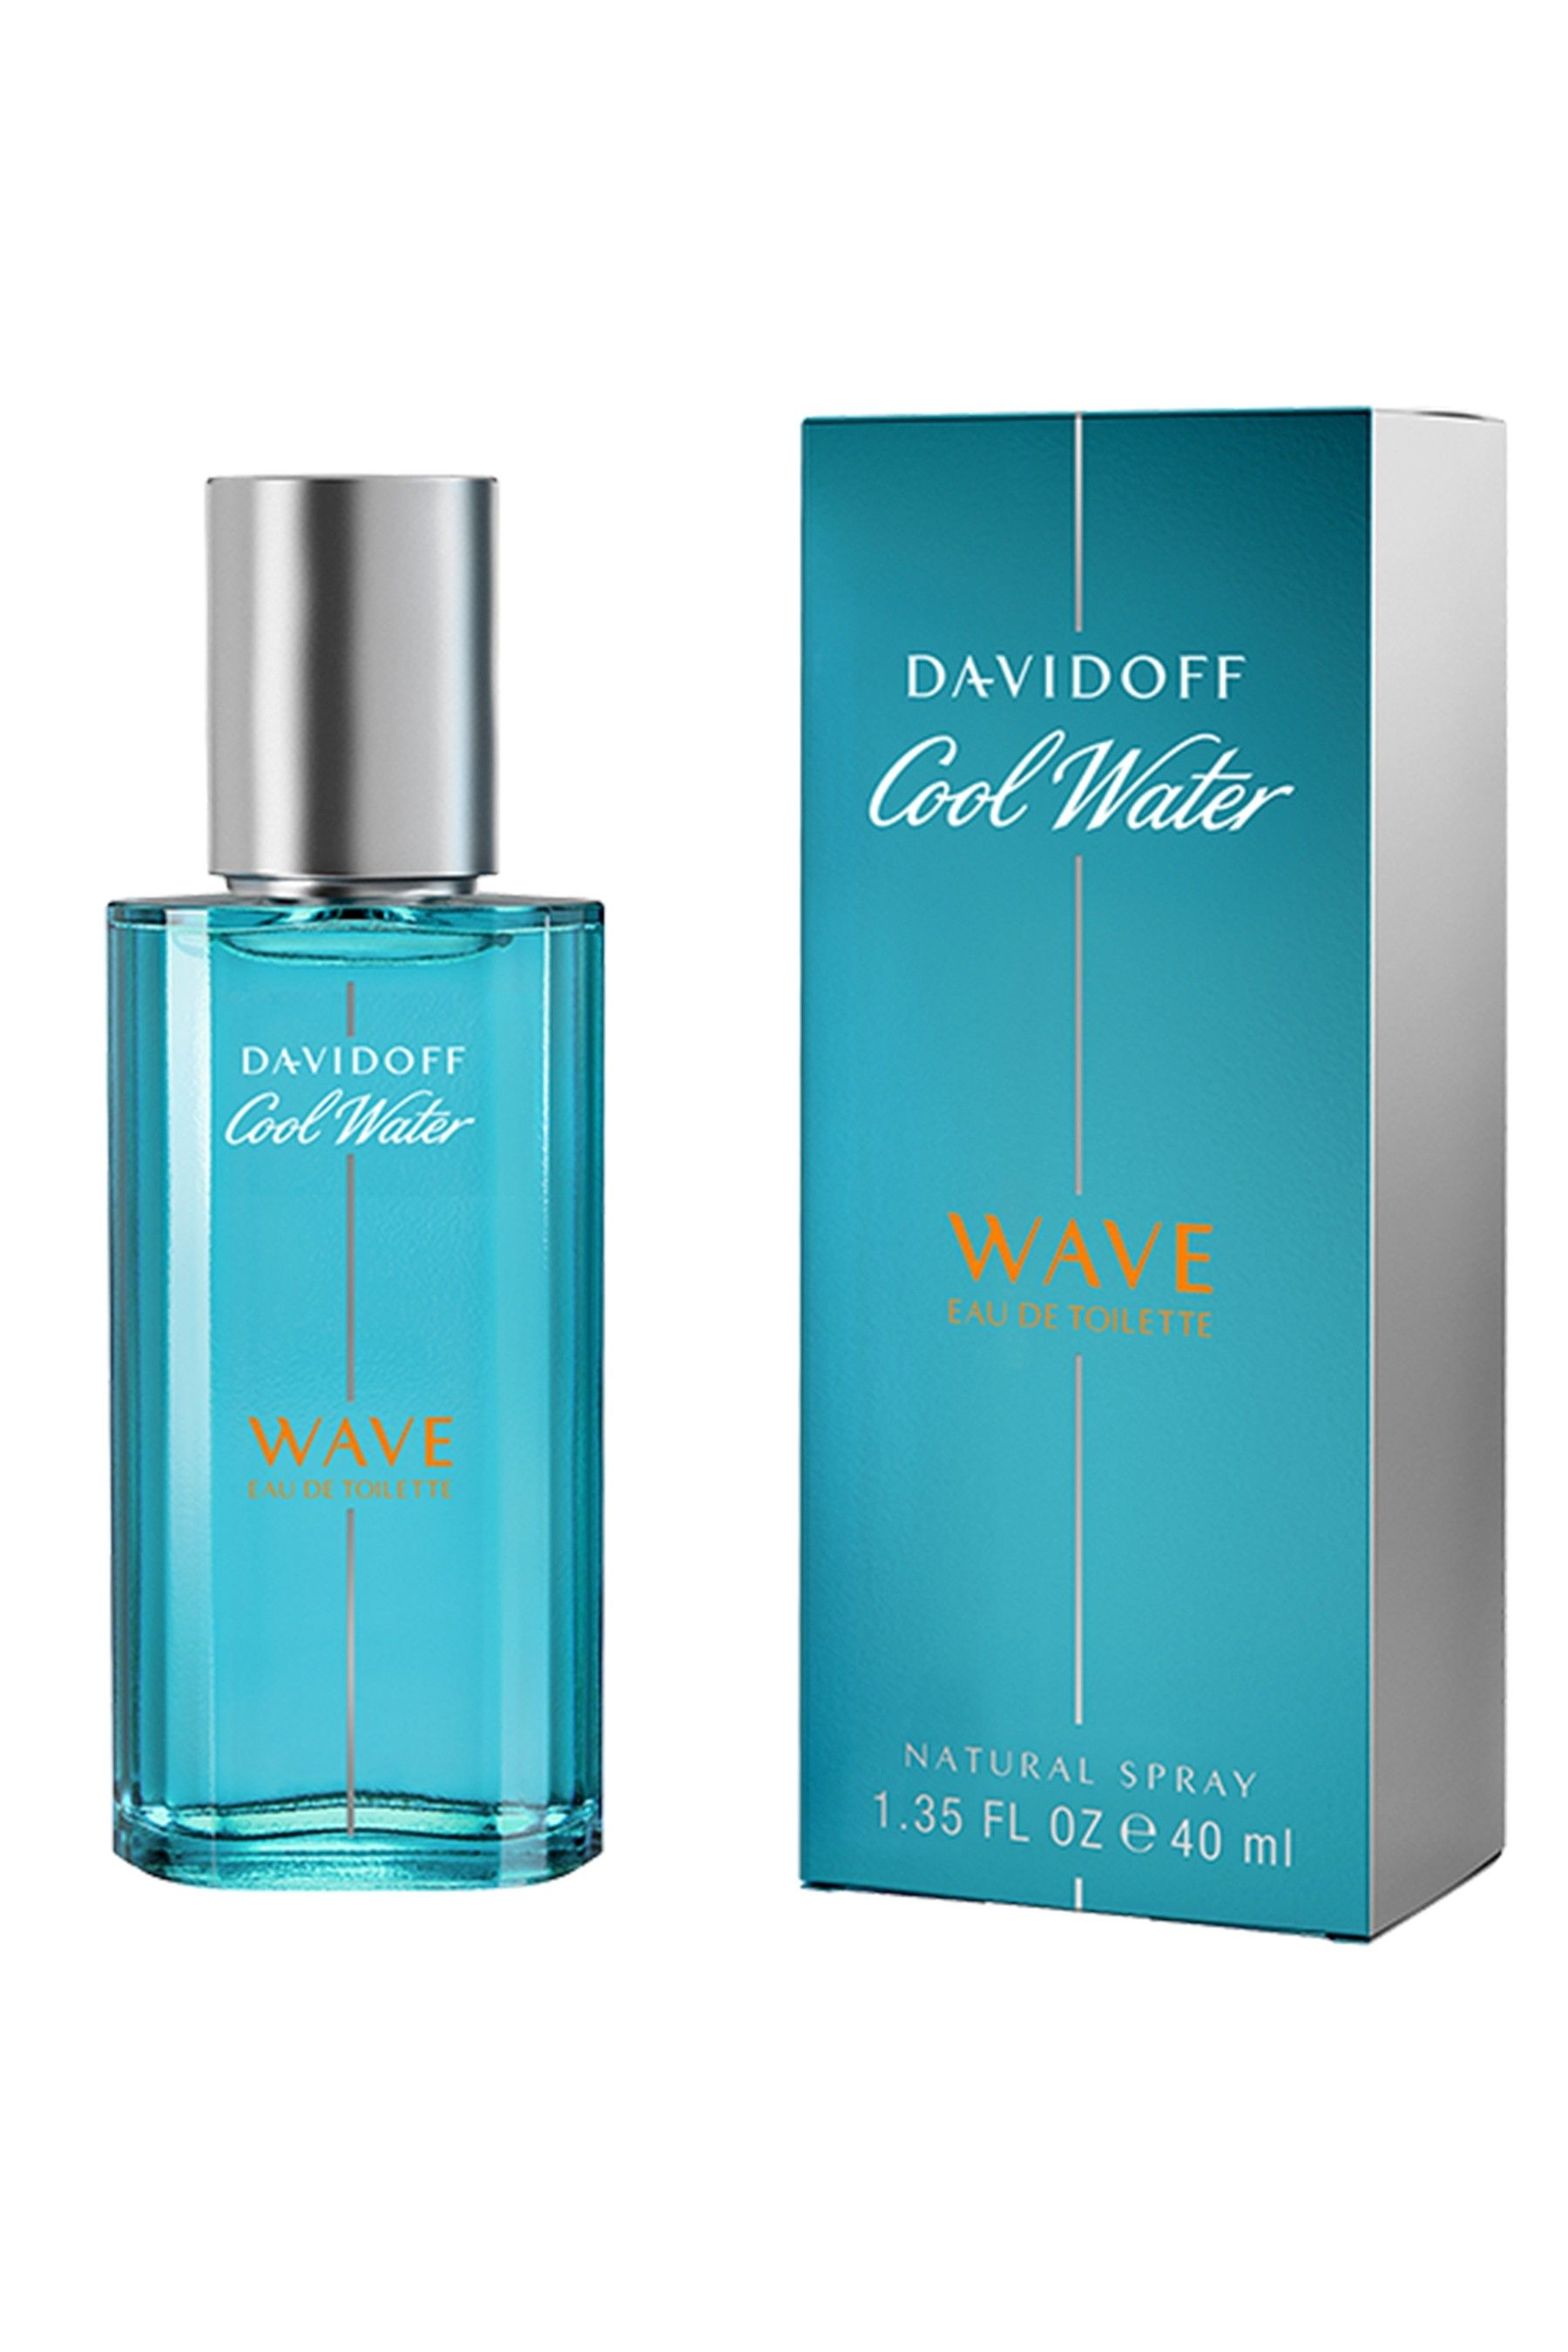 d690a714c Mens Davidoff Cool Water Wave Eau de Toilette 40ml - No Colour in ...